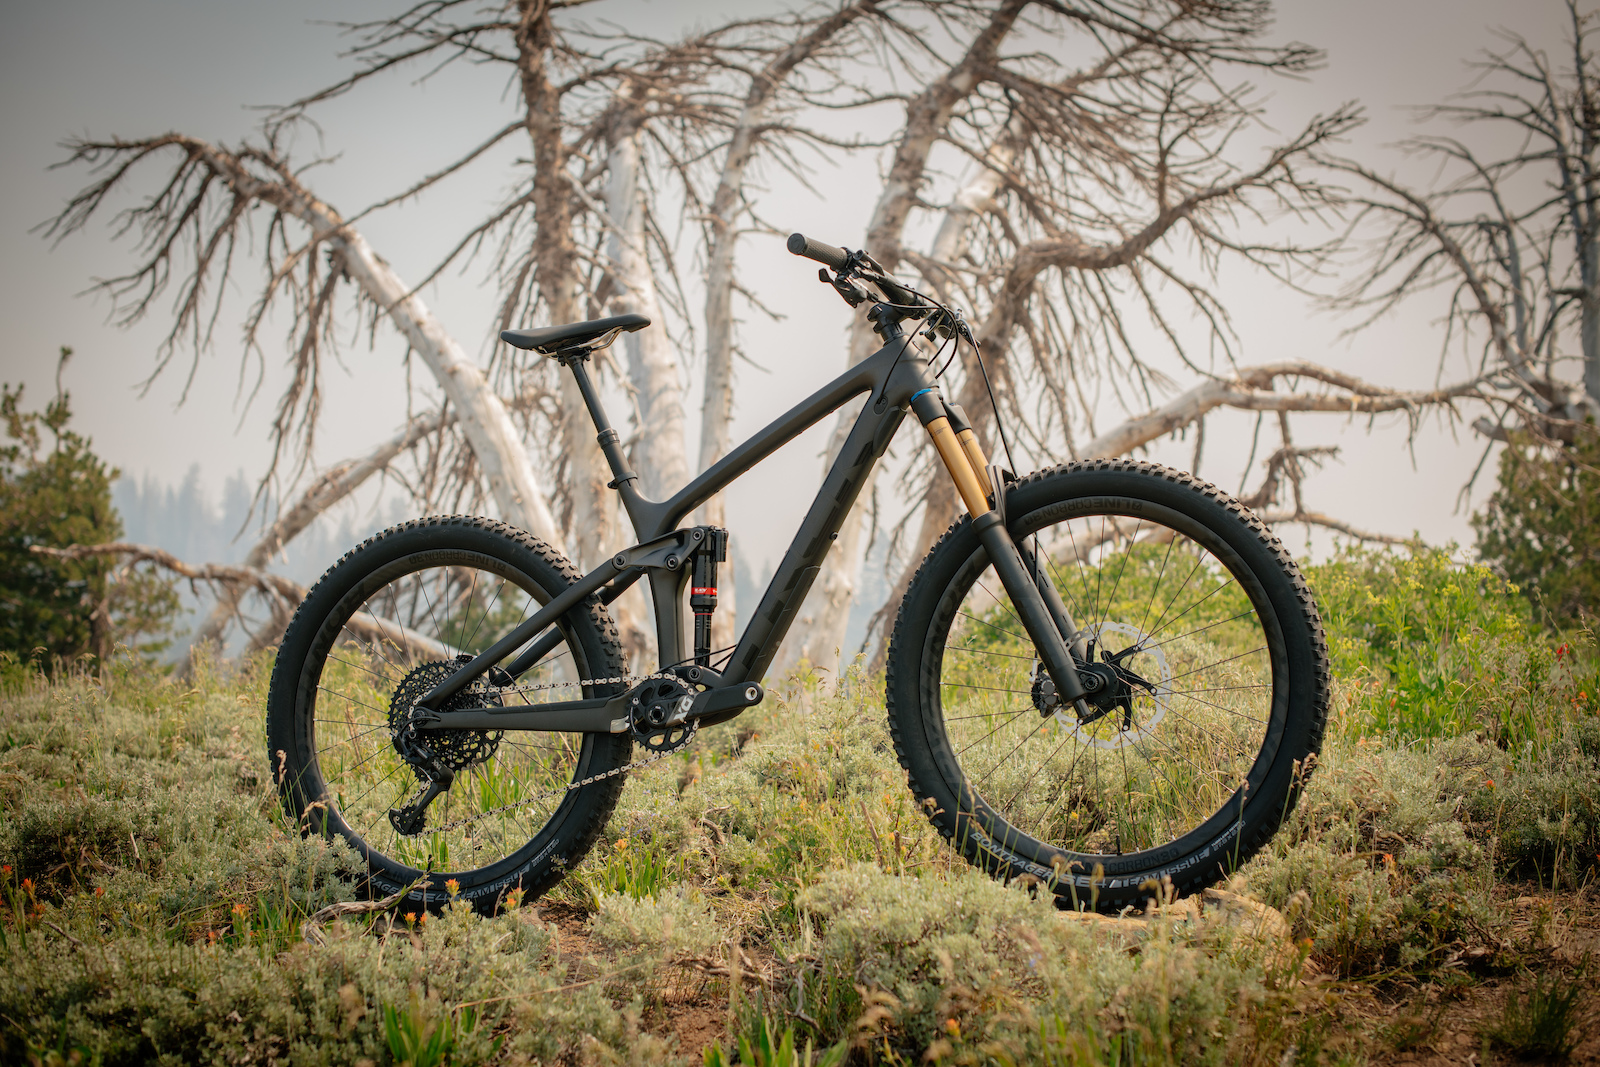 47db37382d4 First Look: Trek's New 2019 Remedy - Pinkbike